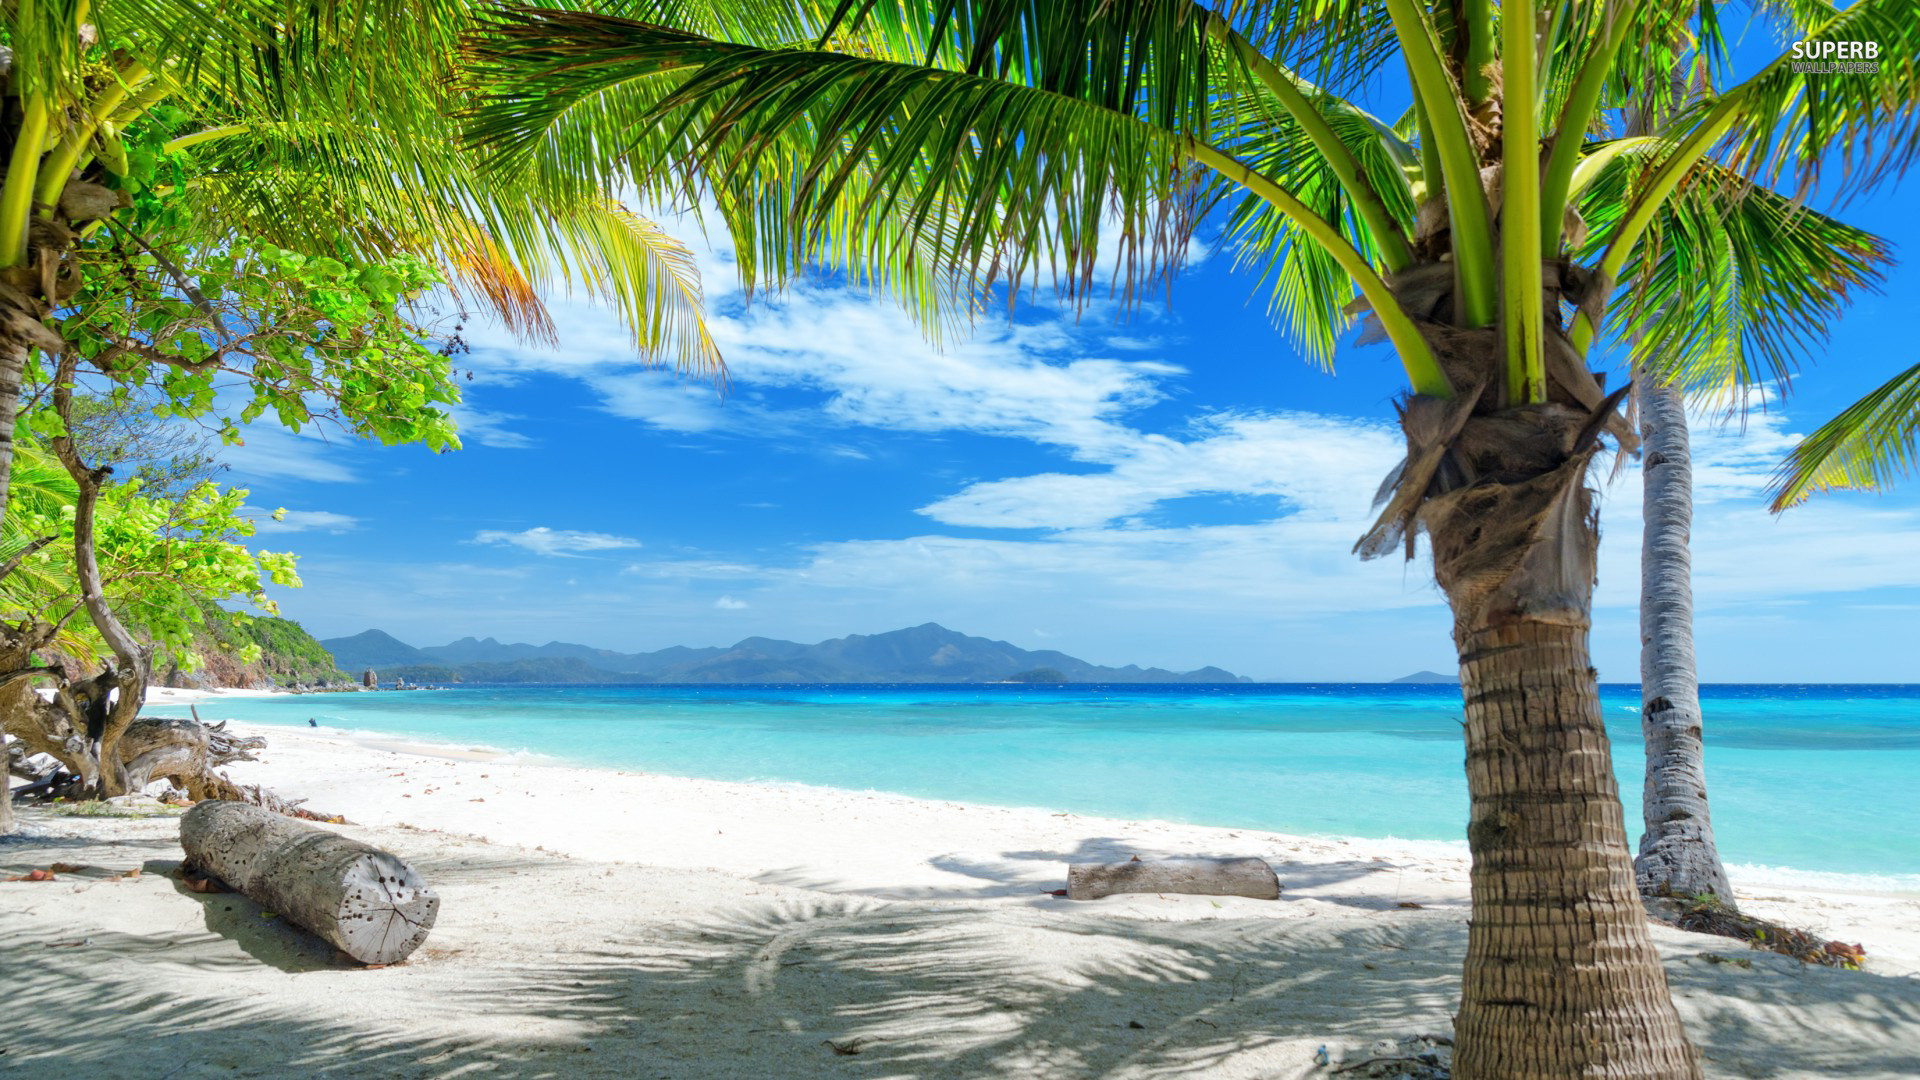 tropical beach hd wallpapers | Desktop Backgrounds for Free HD .